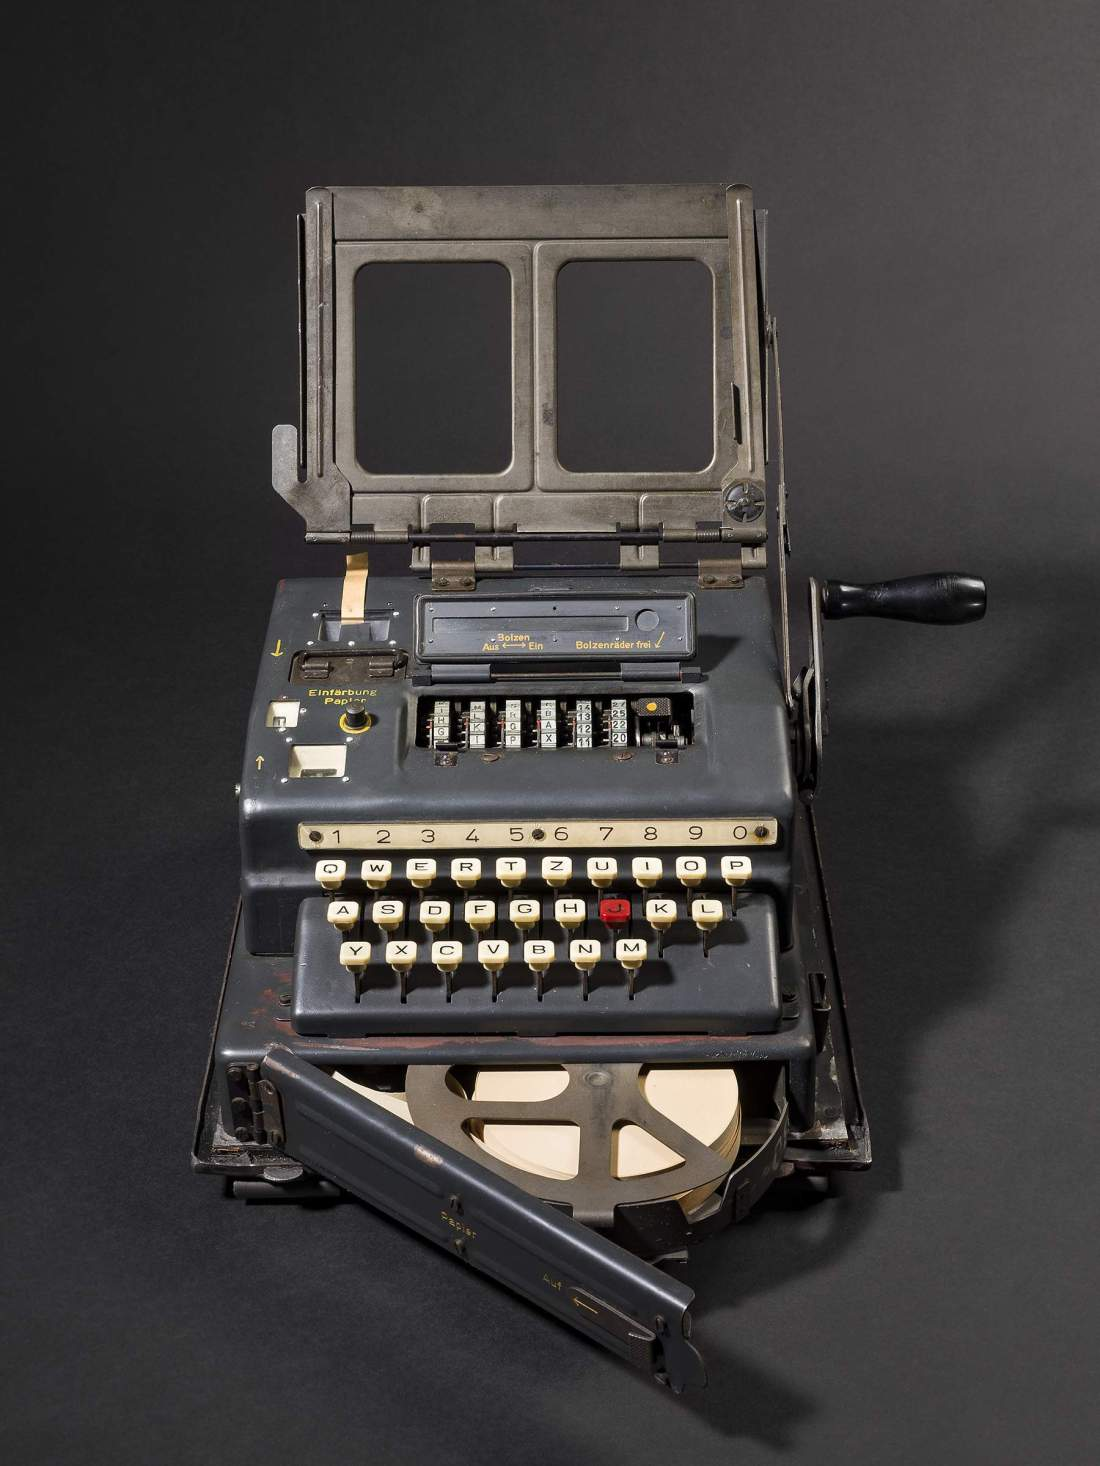 A closer shot of the Schlüsselgerät 41, with its keyboard visible. The bottom door is open, showing a spool of white paper.